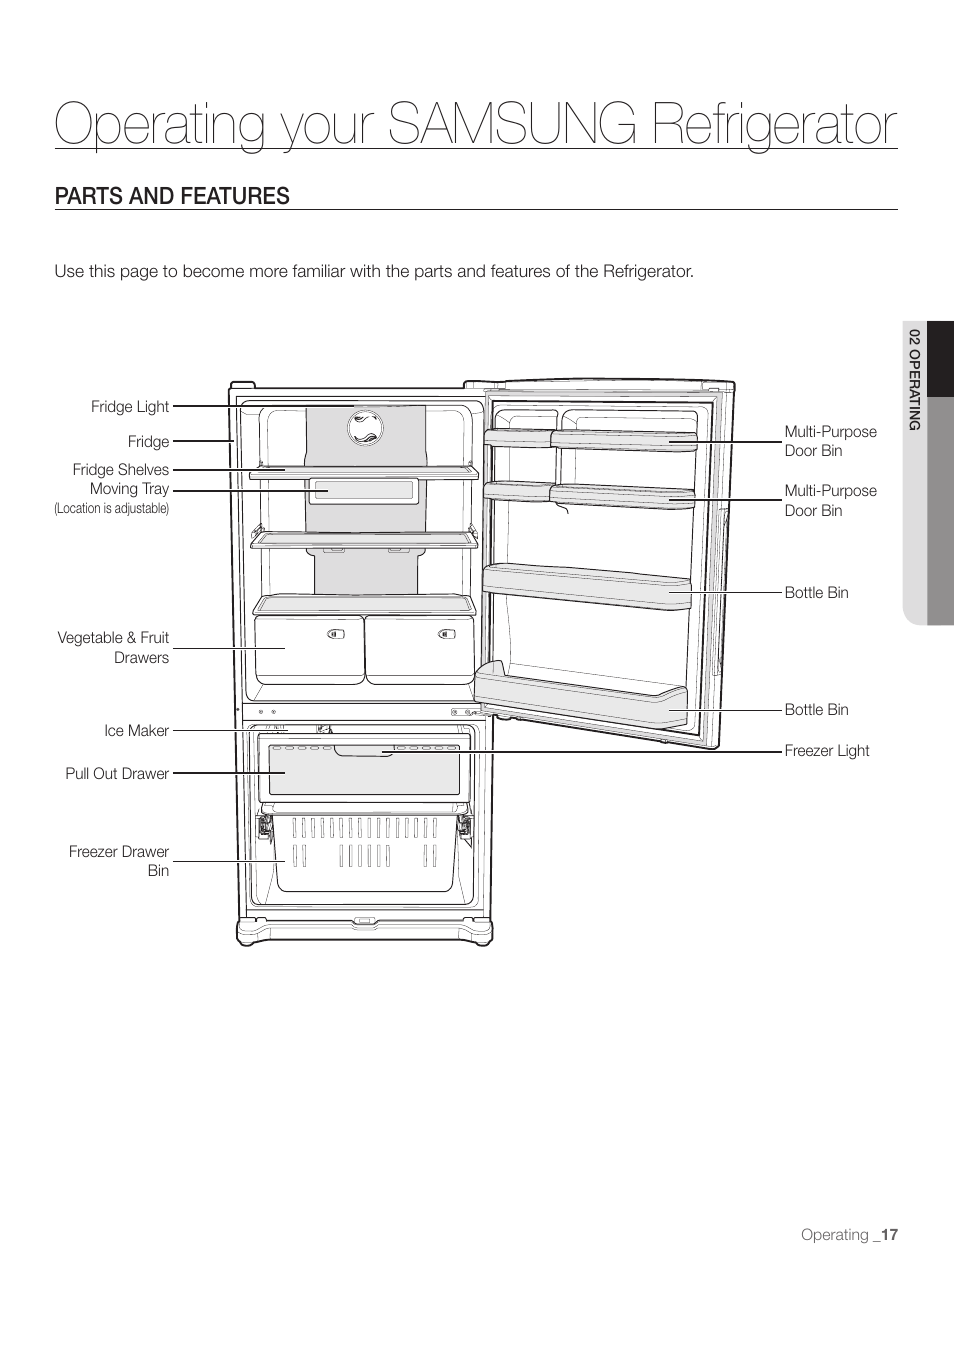 Operating your samsung refrigerator, Parts and features